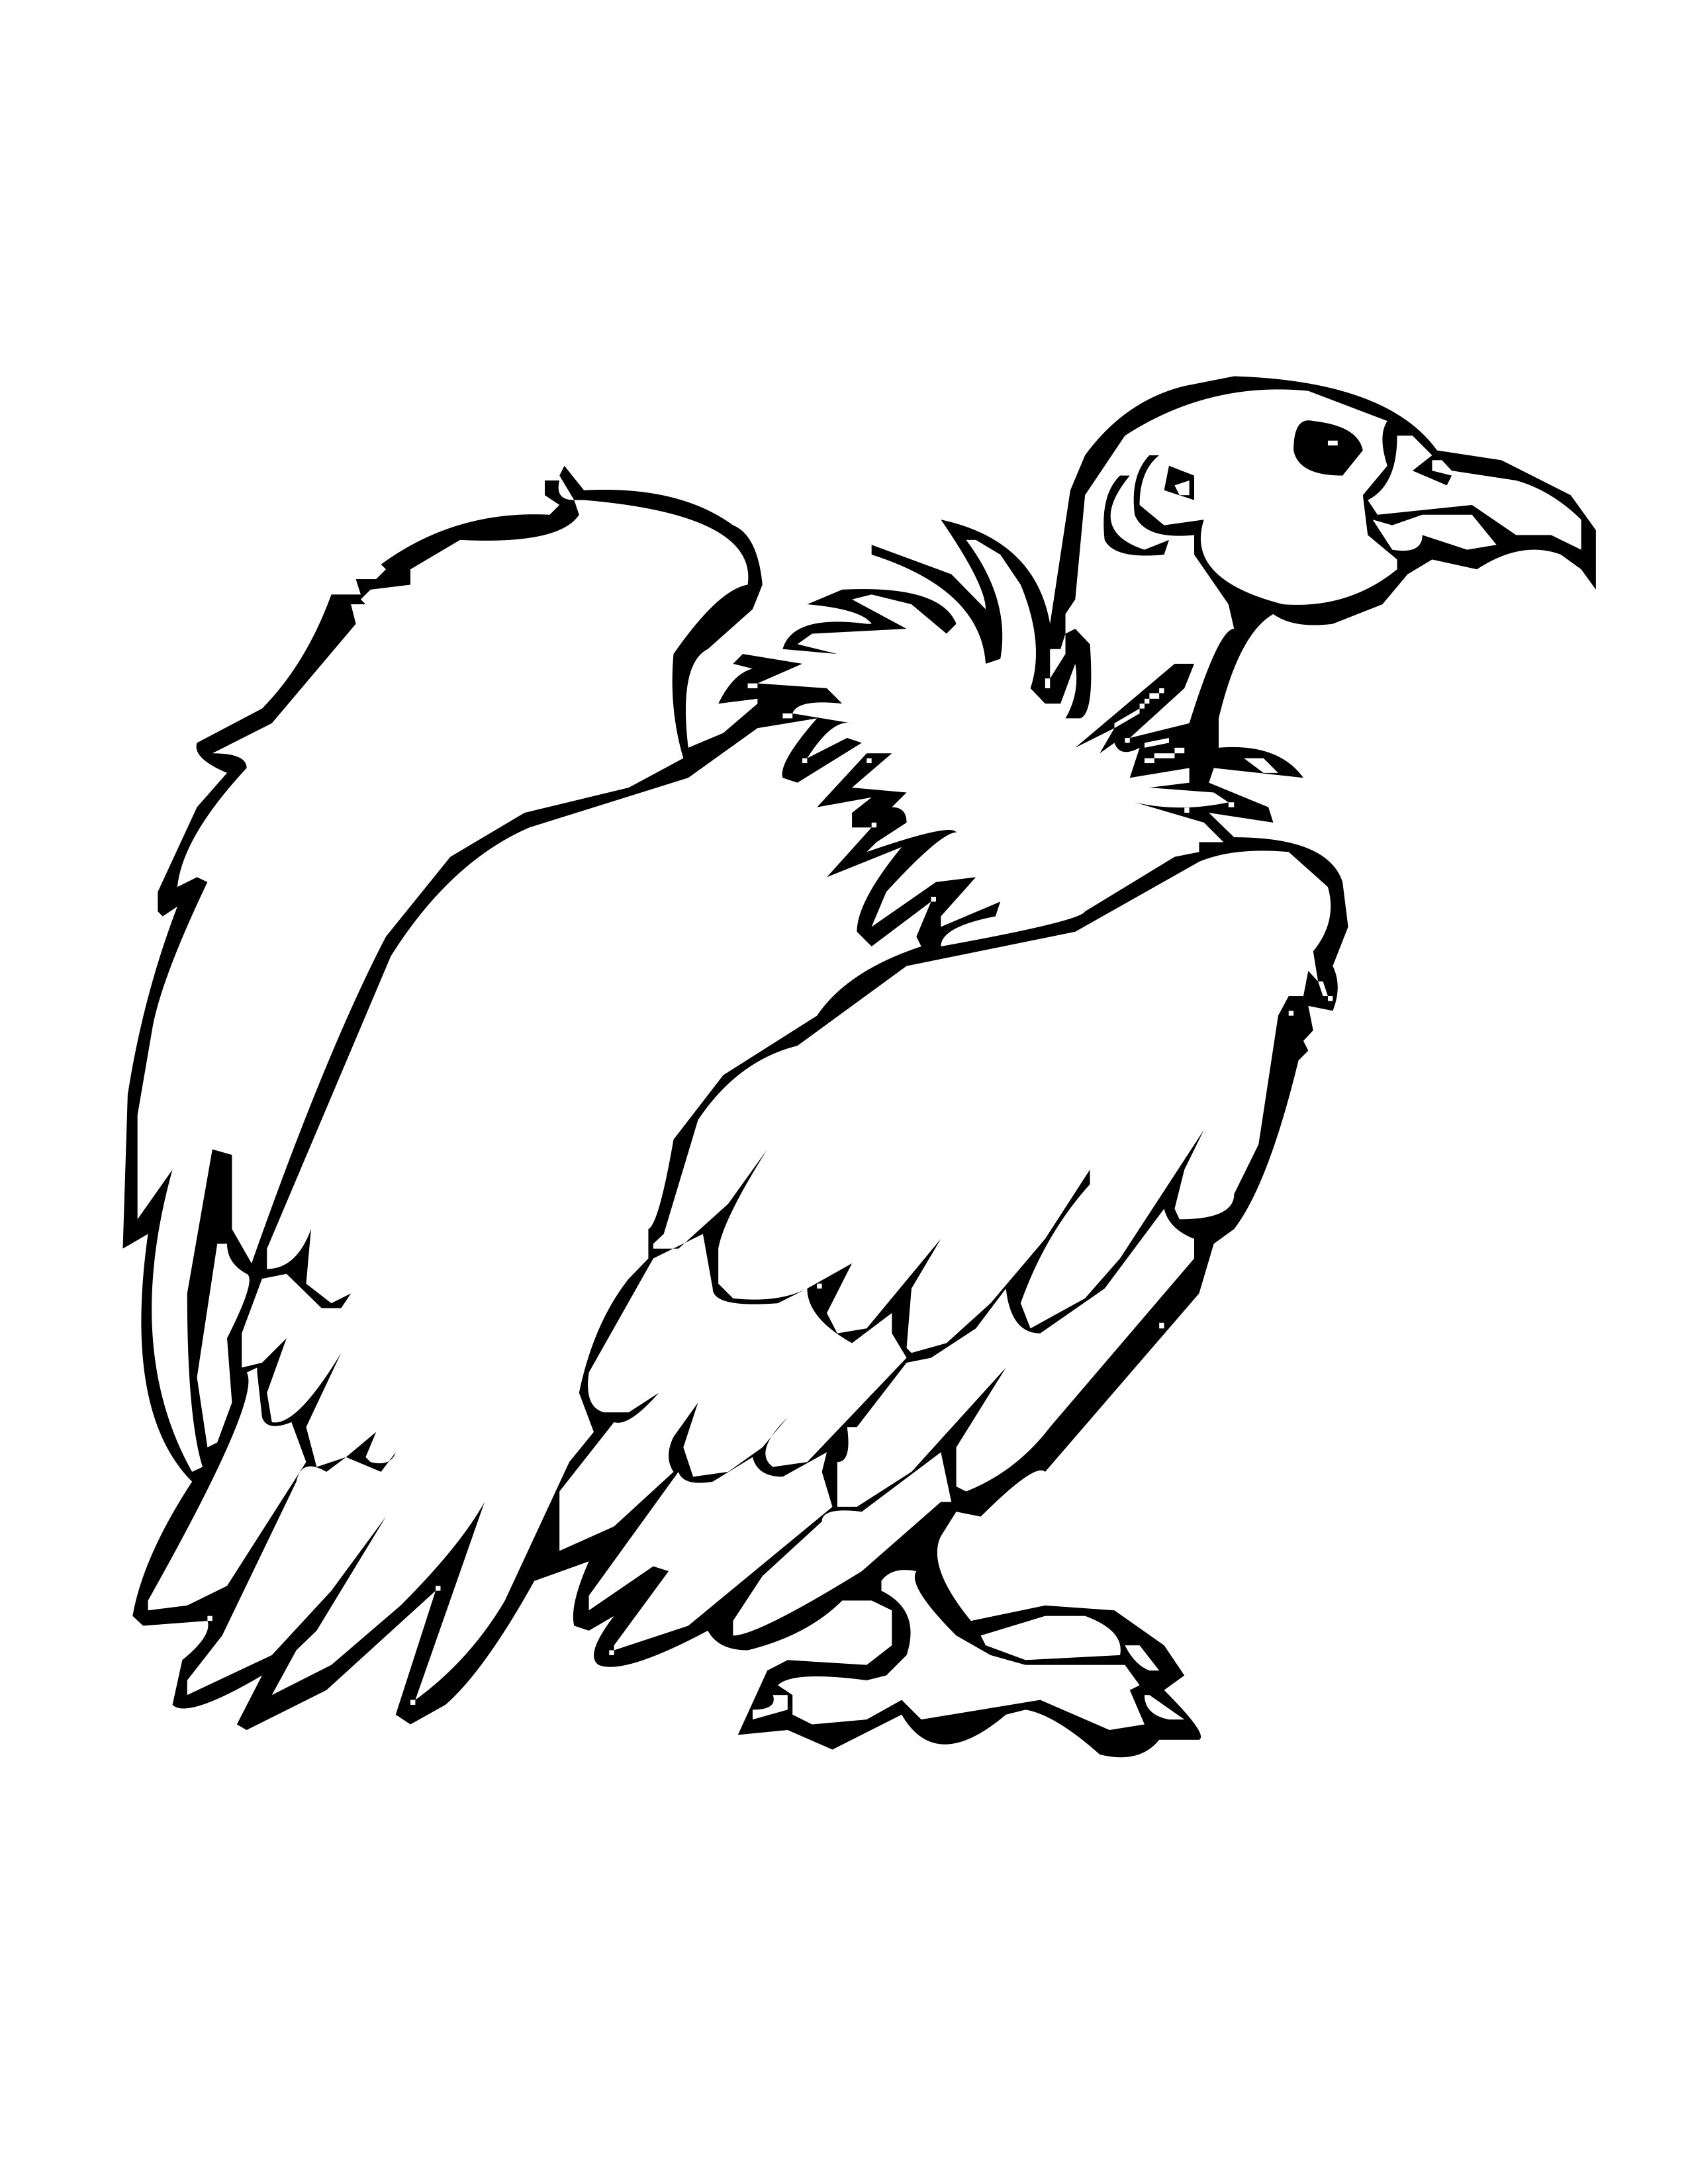 vulture images to color vulture coloring pages preschool and kindergarten images to vulture color